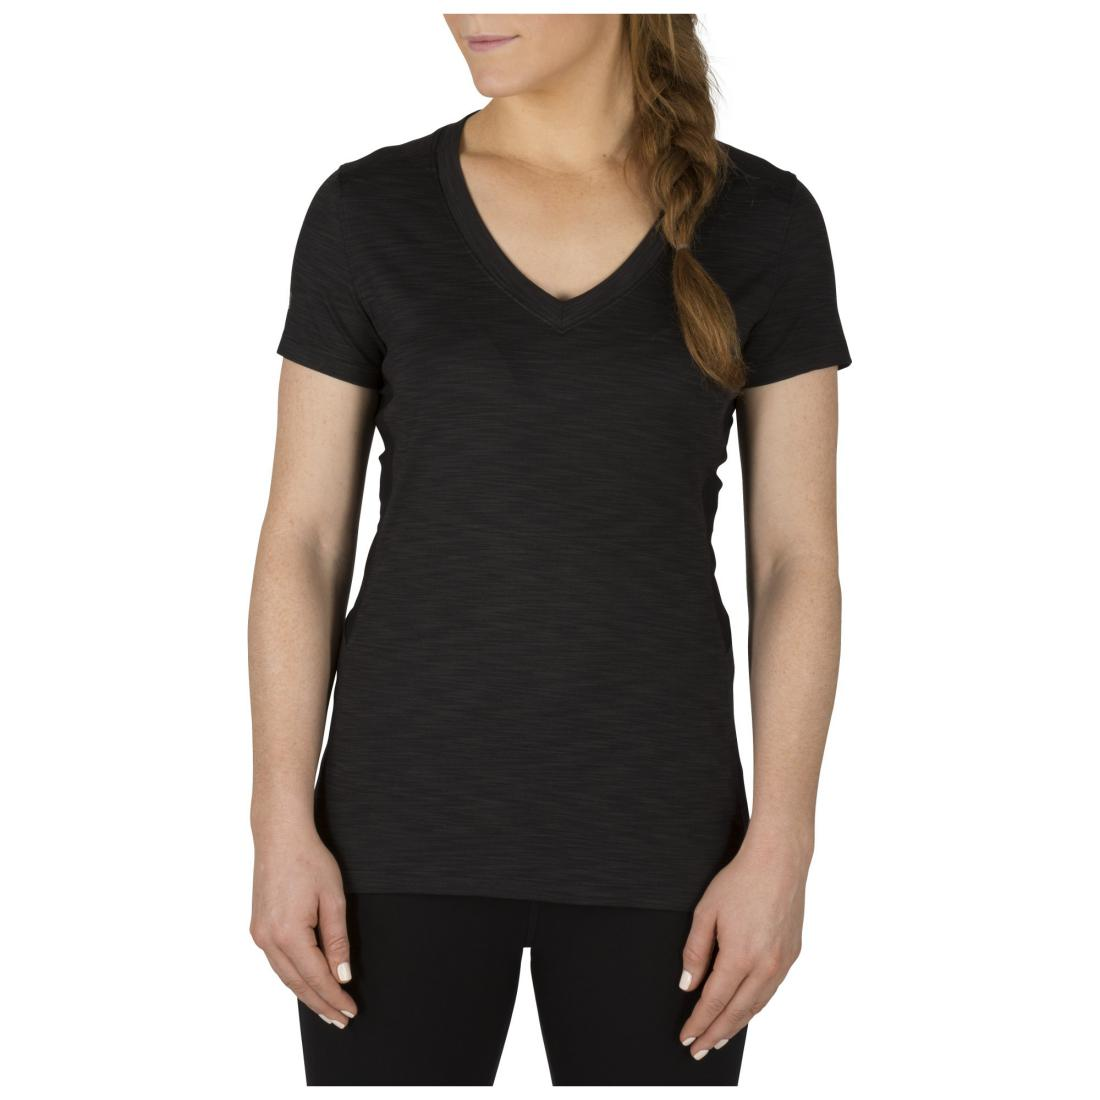 5.11 Tactical 61306 Women's Zig Zag V-Neck Black